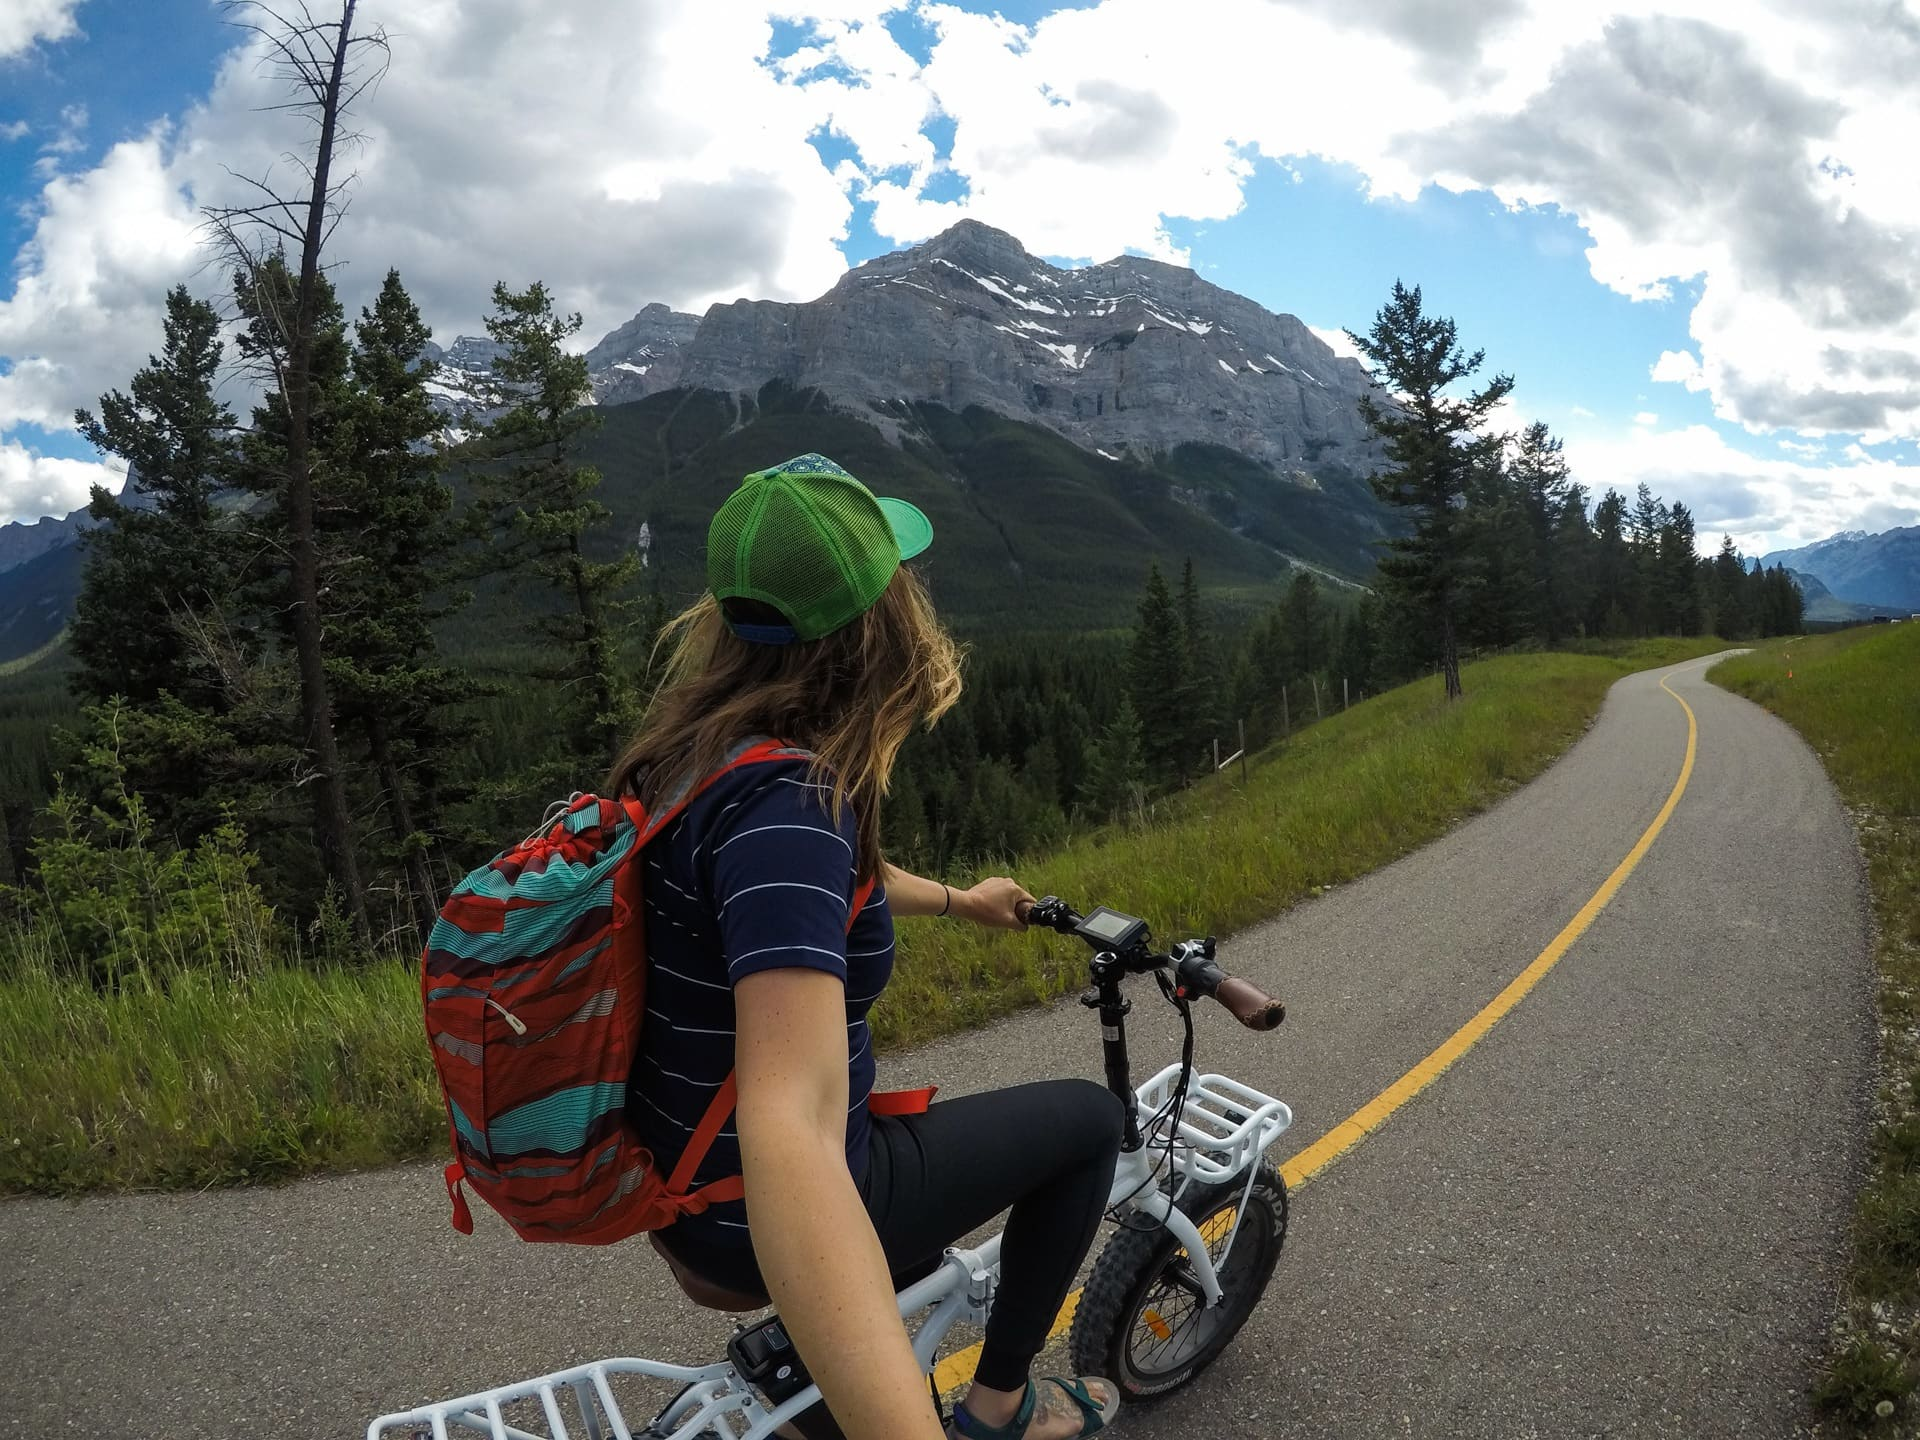 A list of hiking trails, bike paths, kayaking and all the best outdoor activities to do in Banff in the early summer.